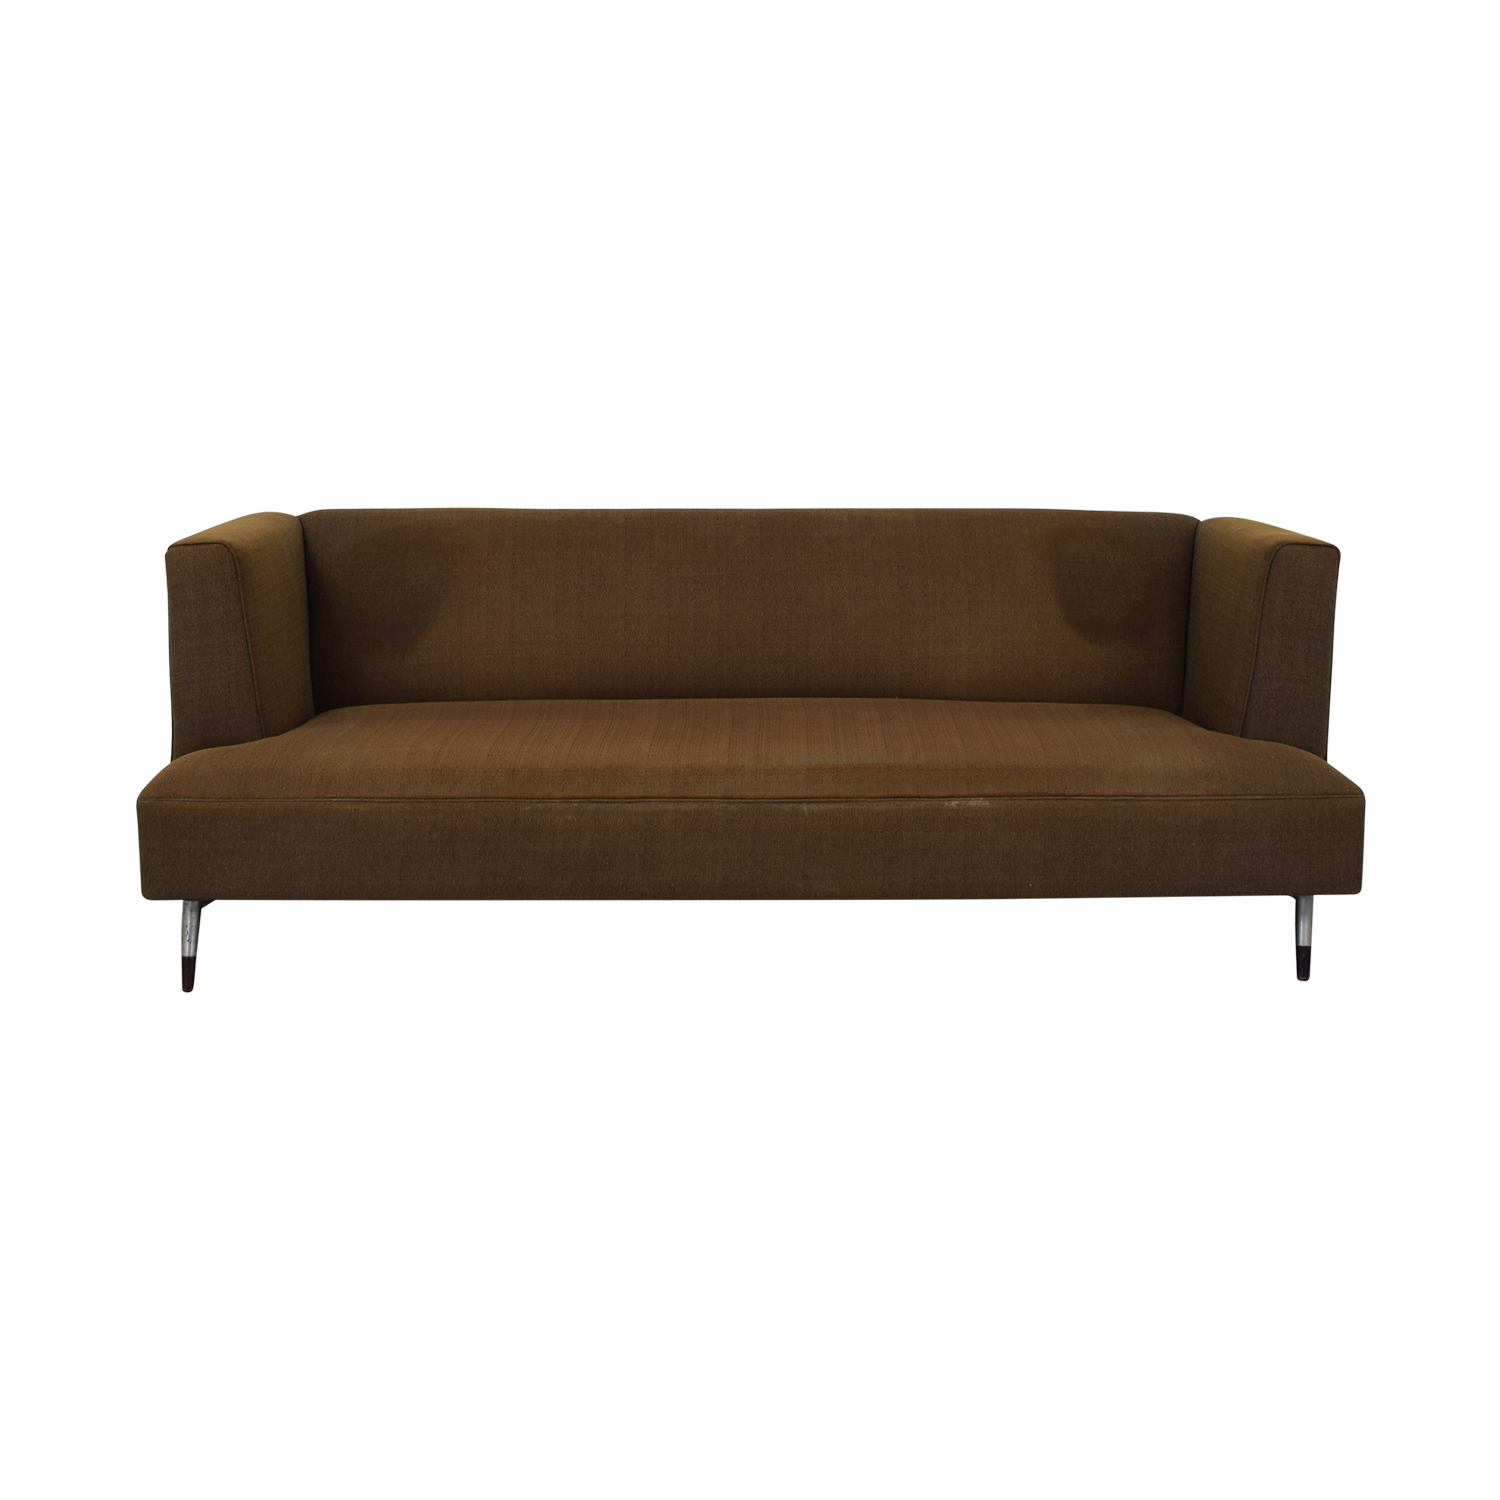 Room & Board Room & Board Arcadia Doria Mocha Sofa second hand